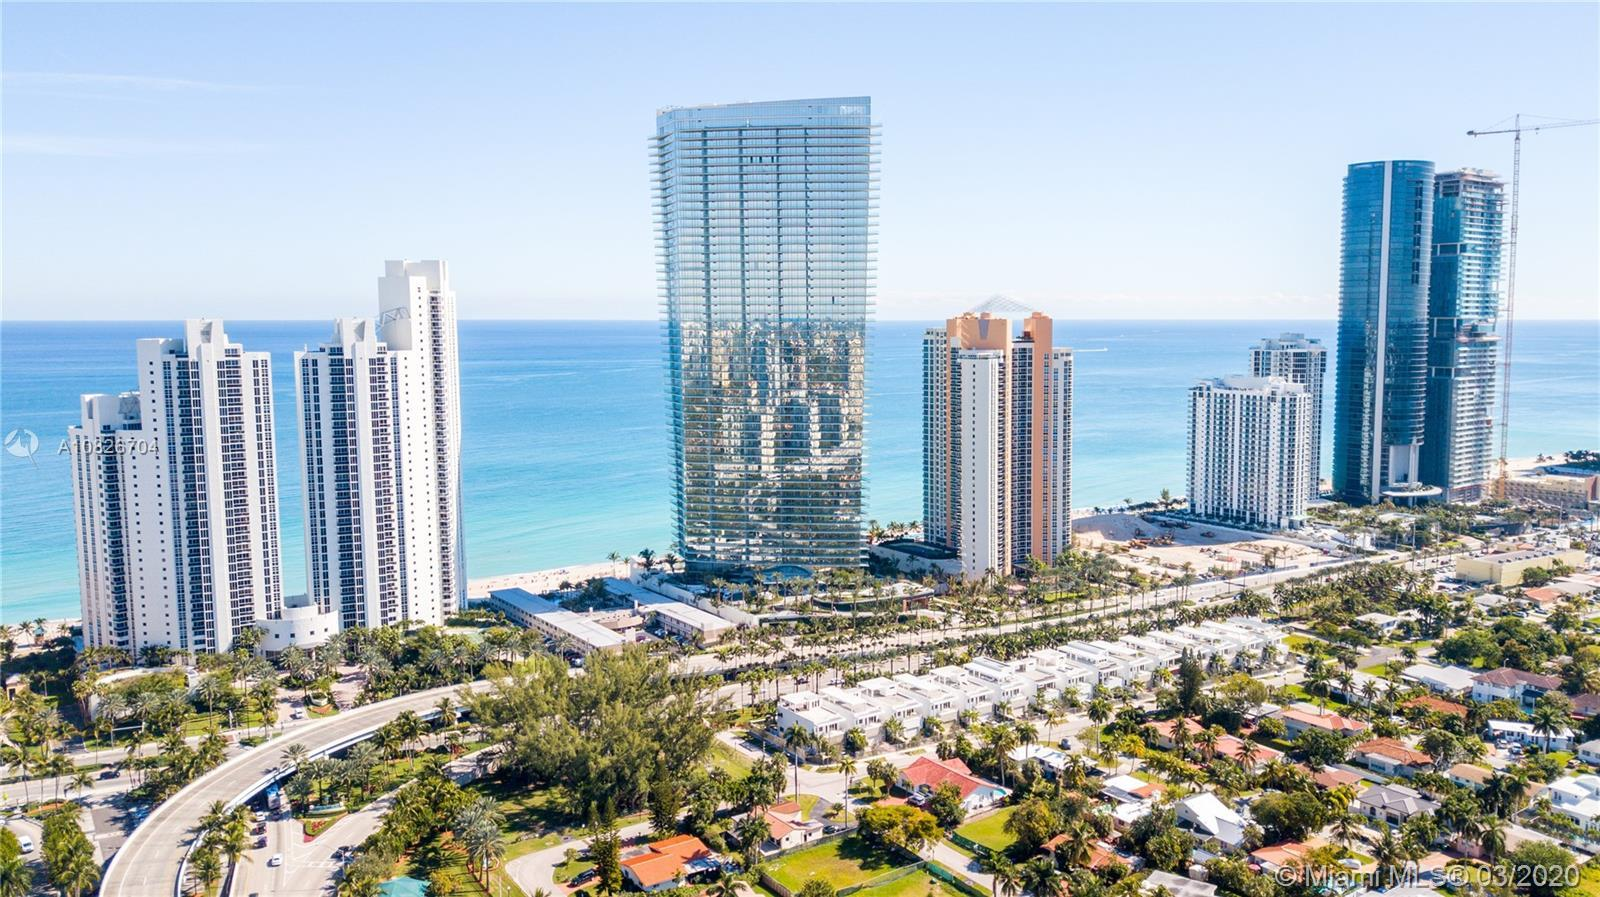 SPECTACULAR RESIDENCE AT ARMANI CASA WITH GORGEOUS INTRACOASTAL AND OCEAN VIEWS! 2 BEDS / 2 BATHS, 1